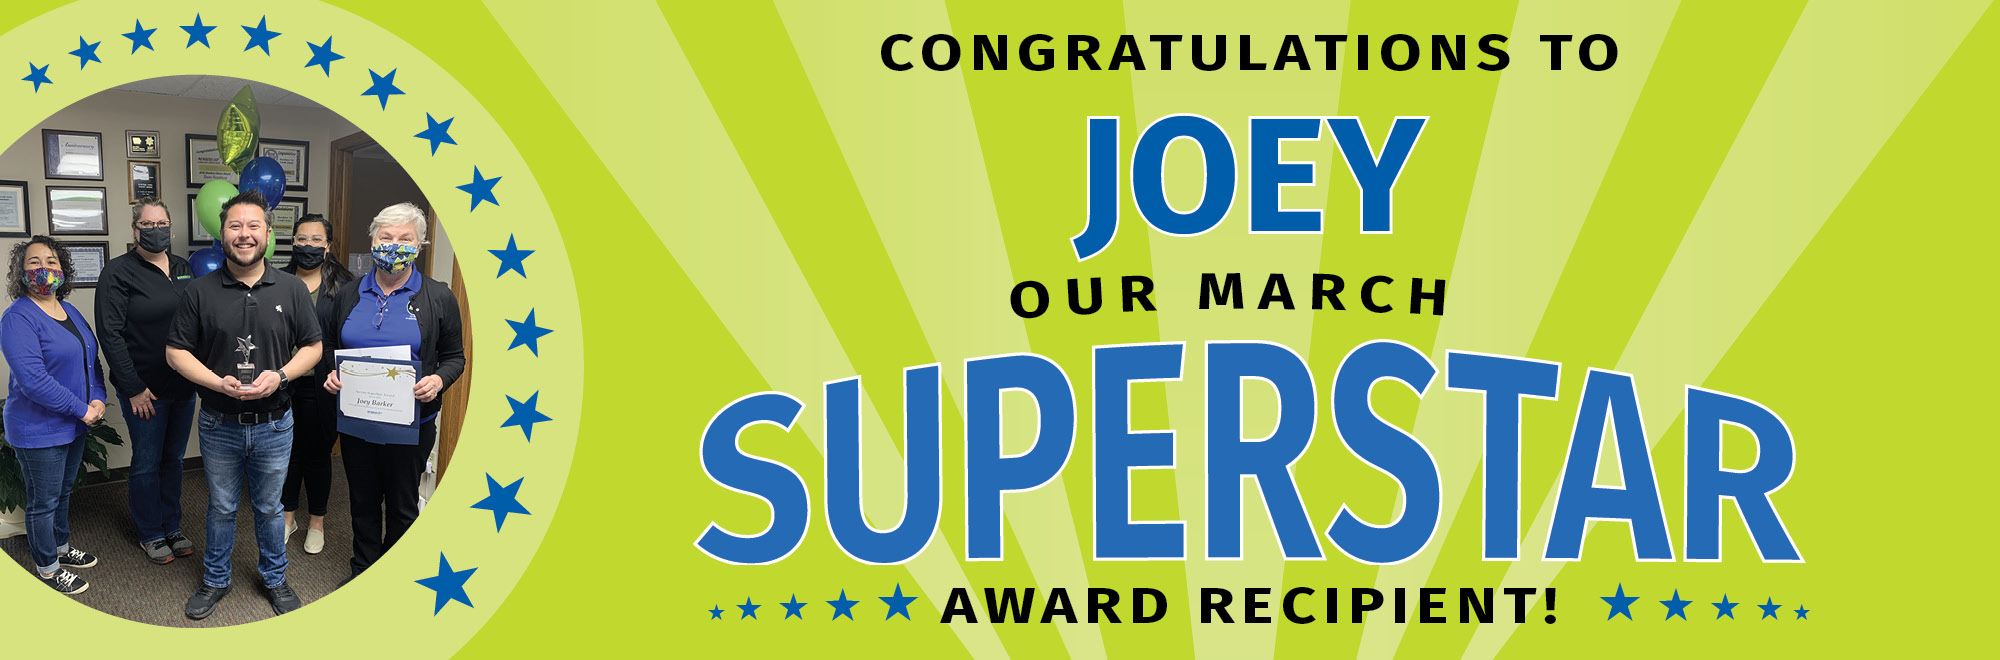 Congratulations to Joey, our March Superstar award recipient!